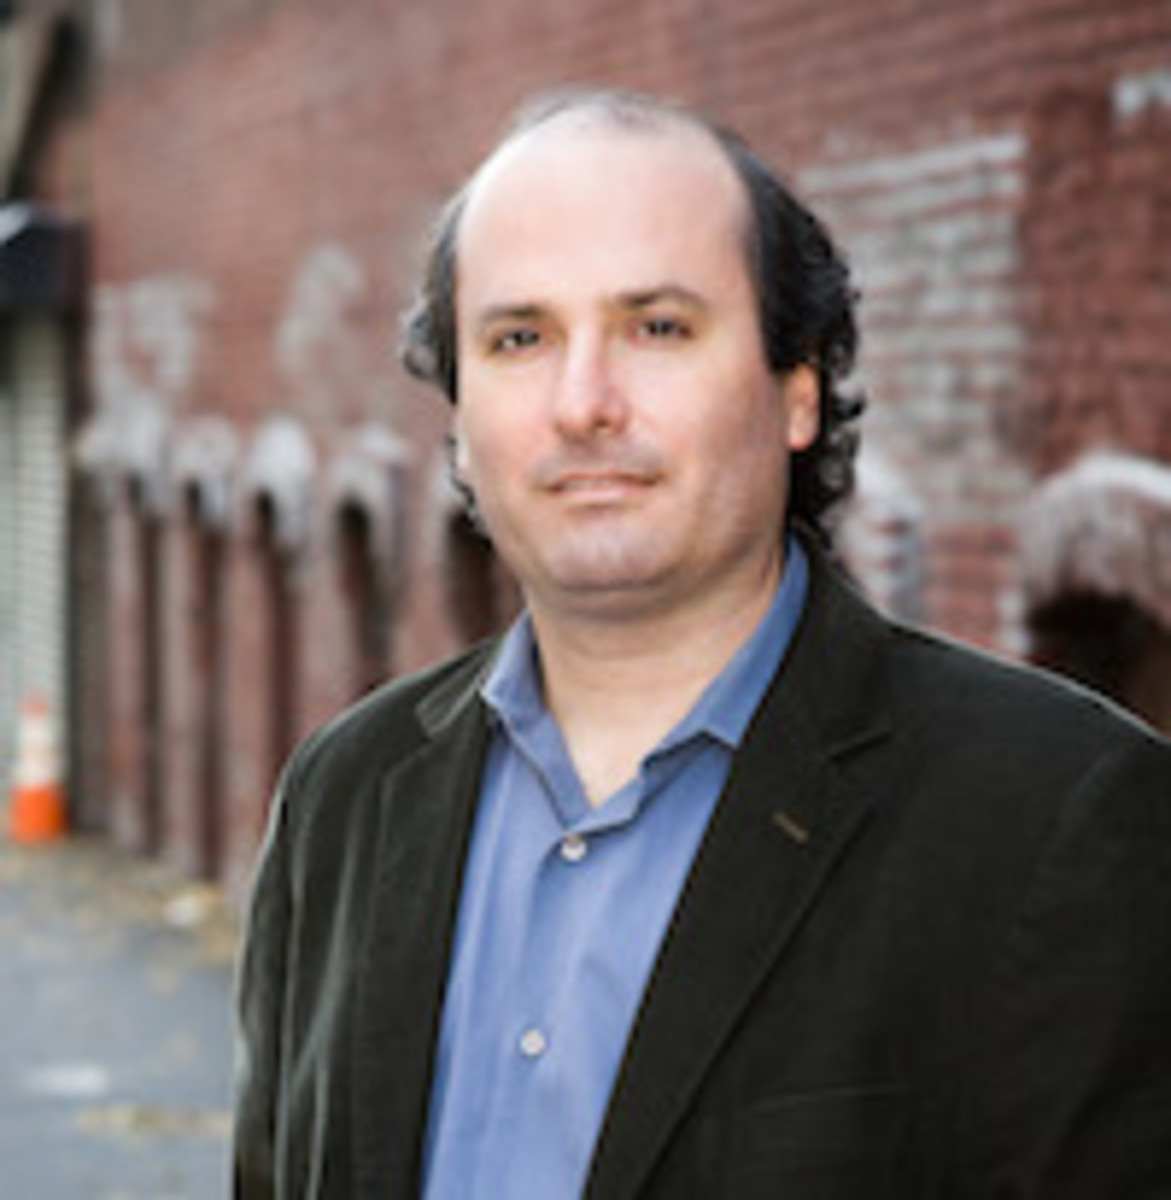 David Grann, author, Killers of the Flower Moon: The Osage Murders and the Birth of the FBI